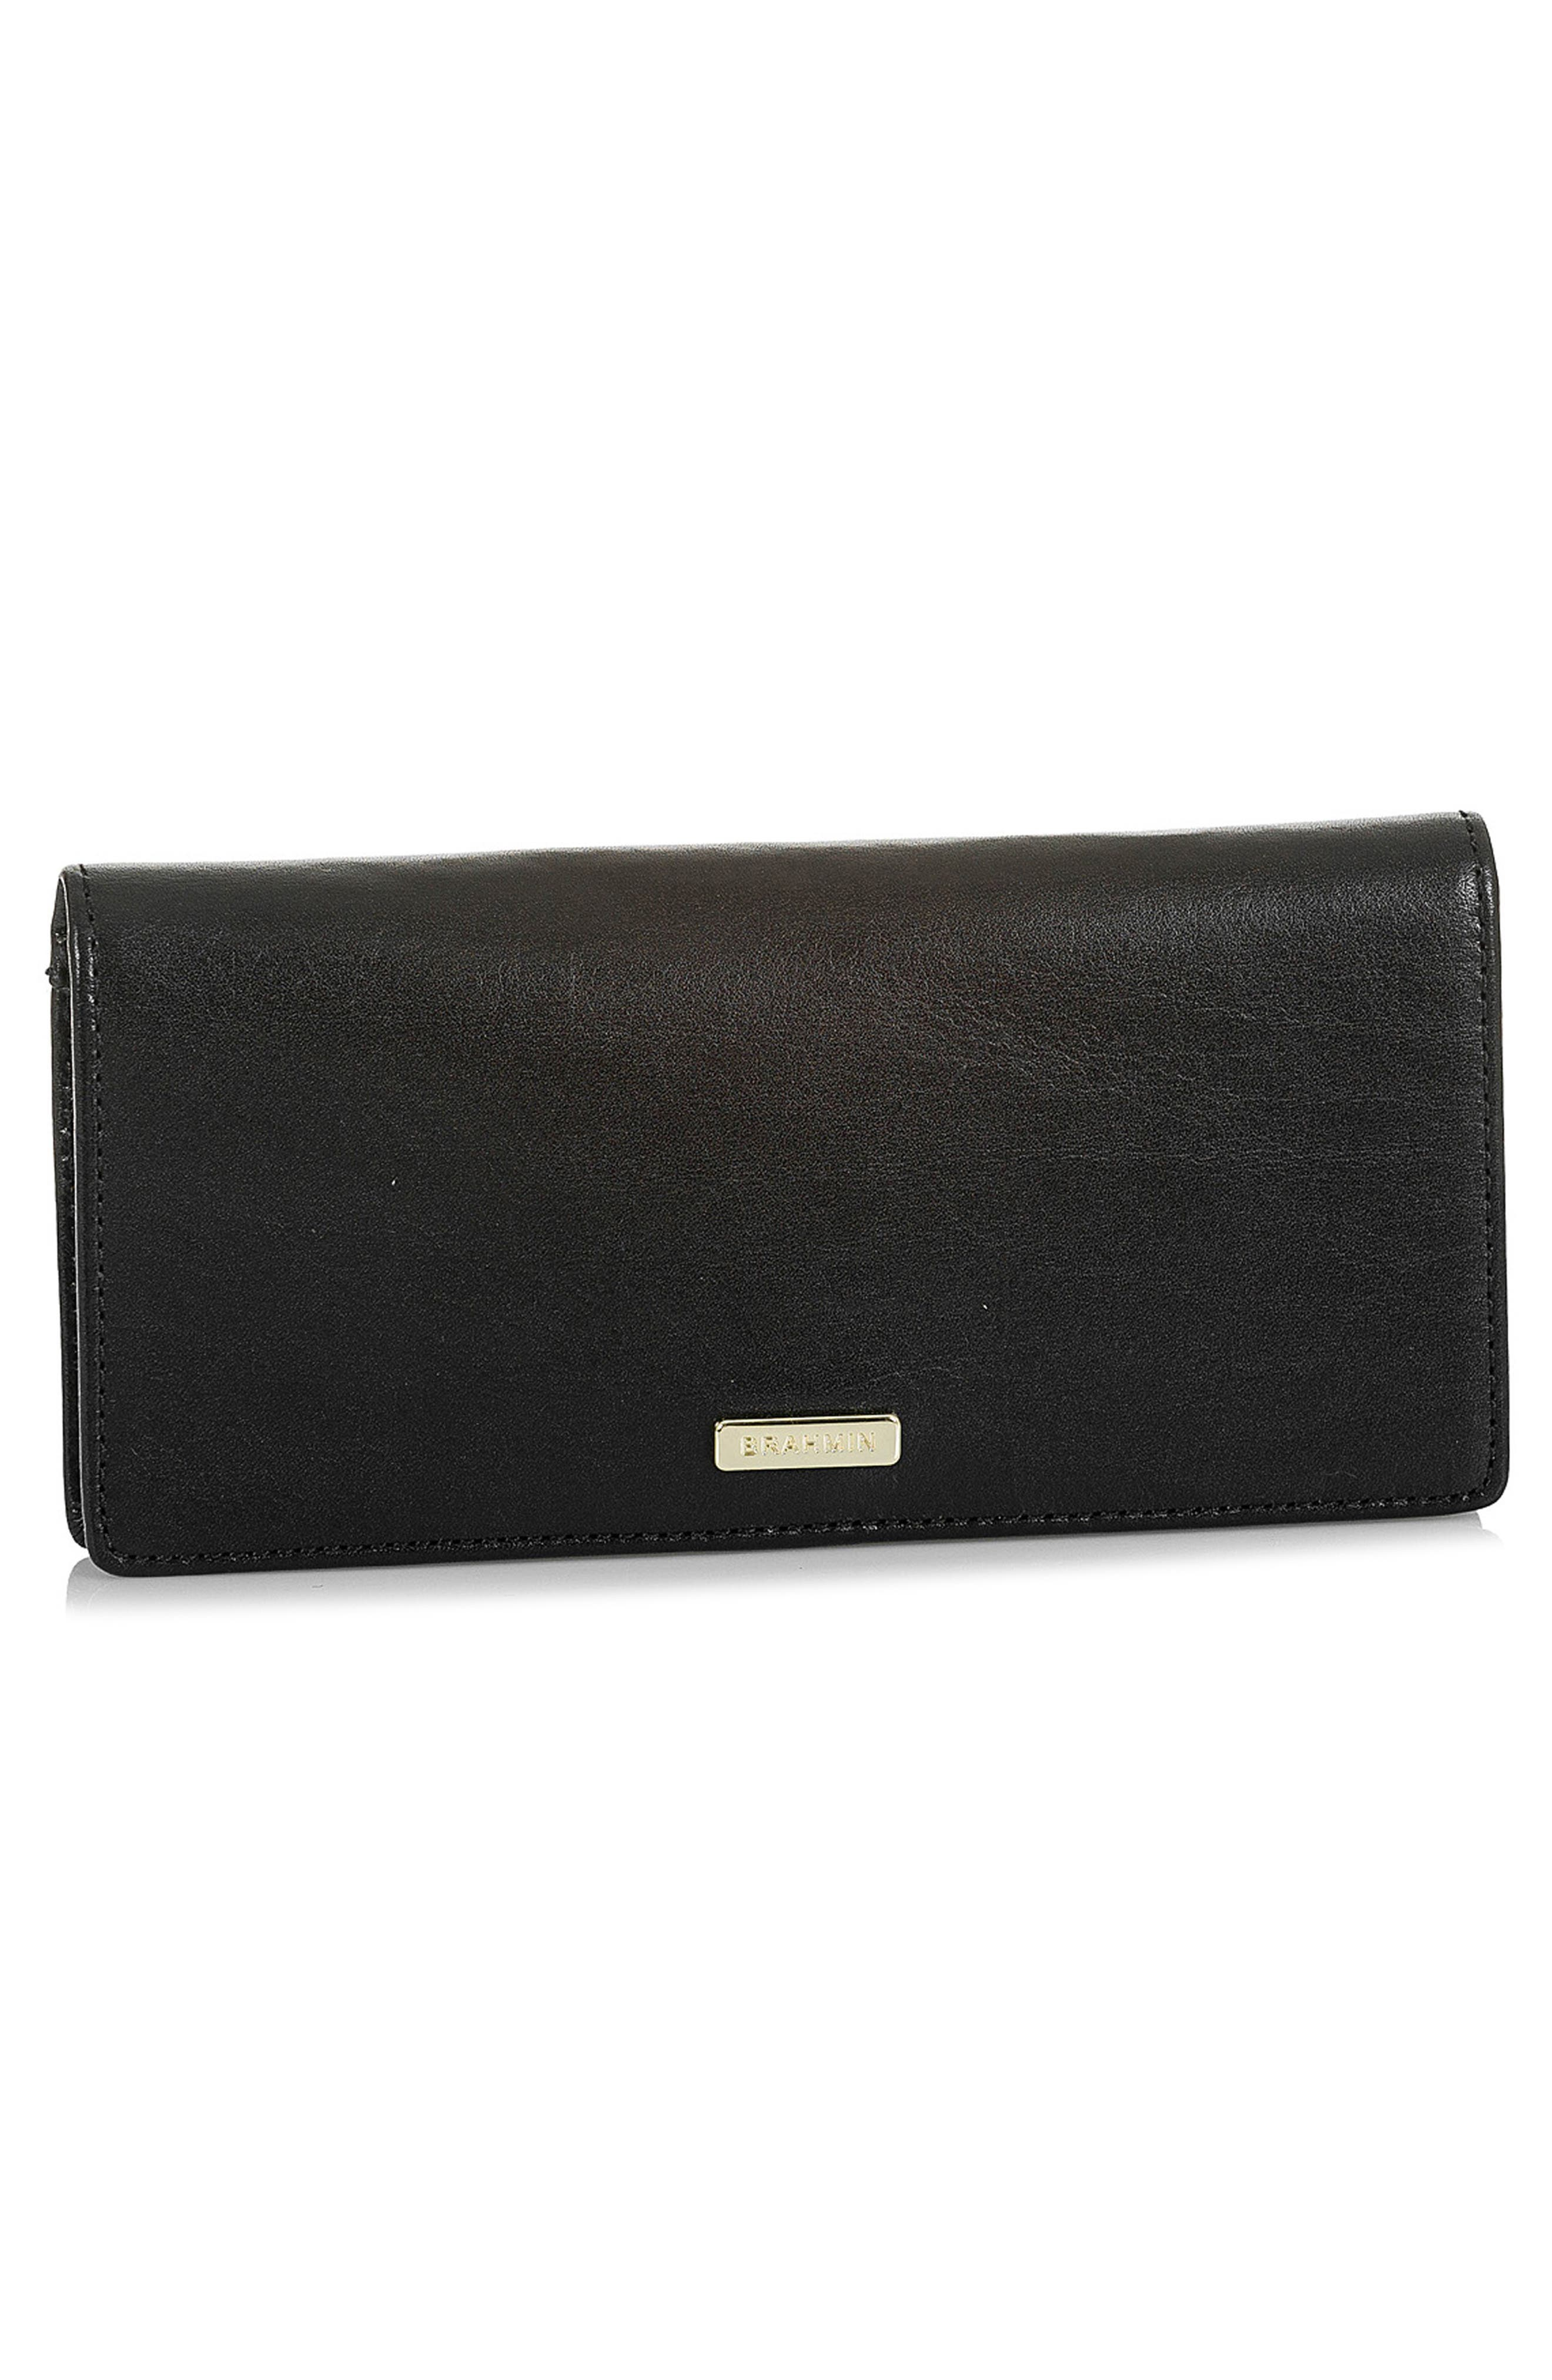 Ady Leather Wallet,                             Alternate thumbnail 4, color,                             BLACK